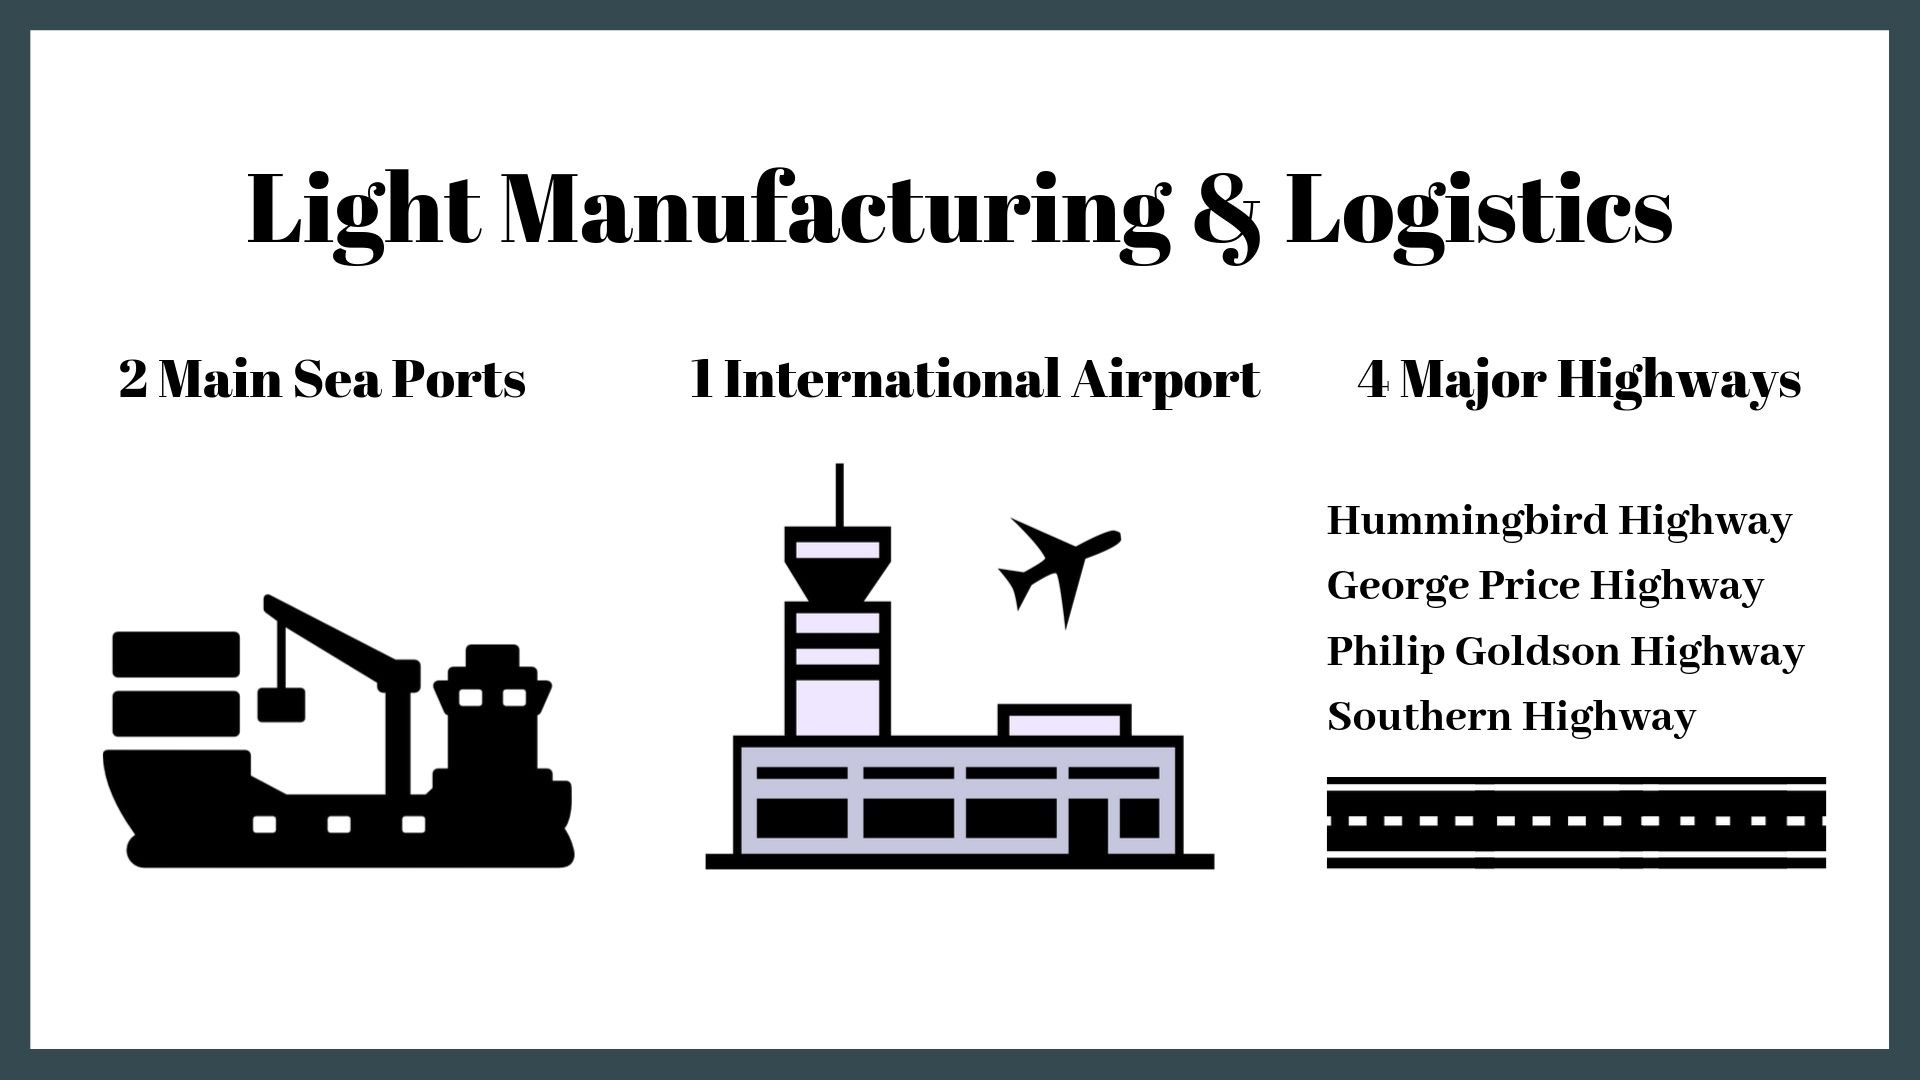 Light Manufacturing and Logistics Info-graphic (3)